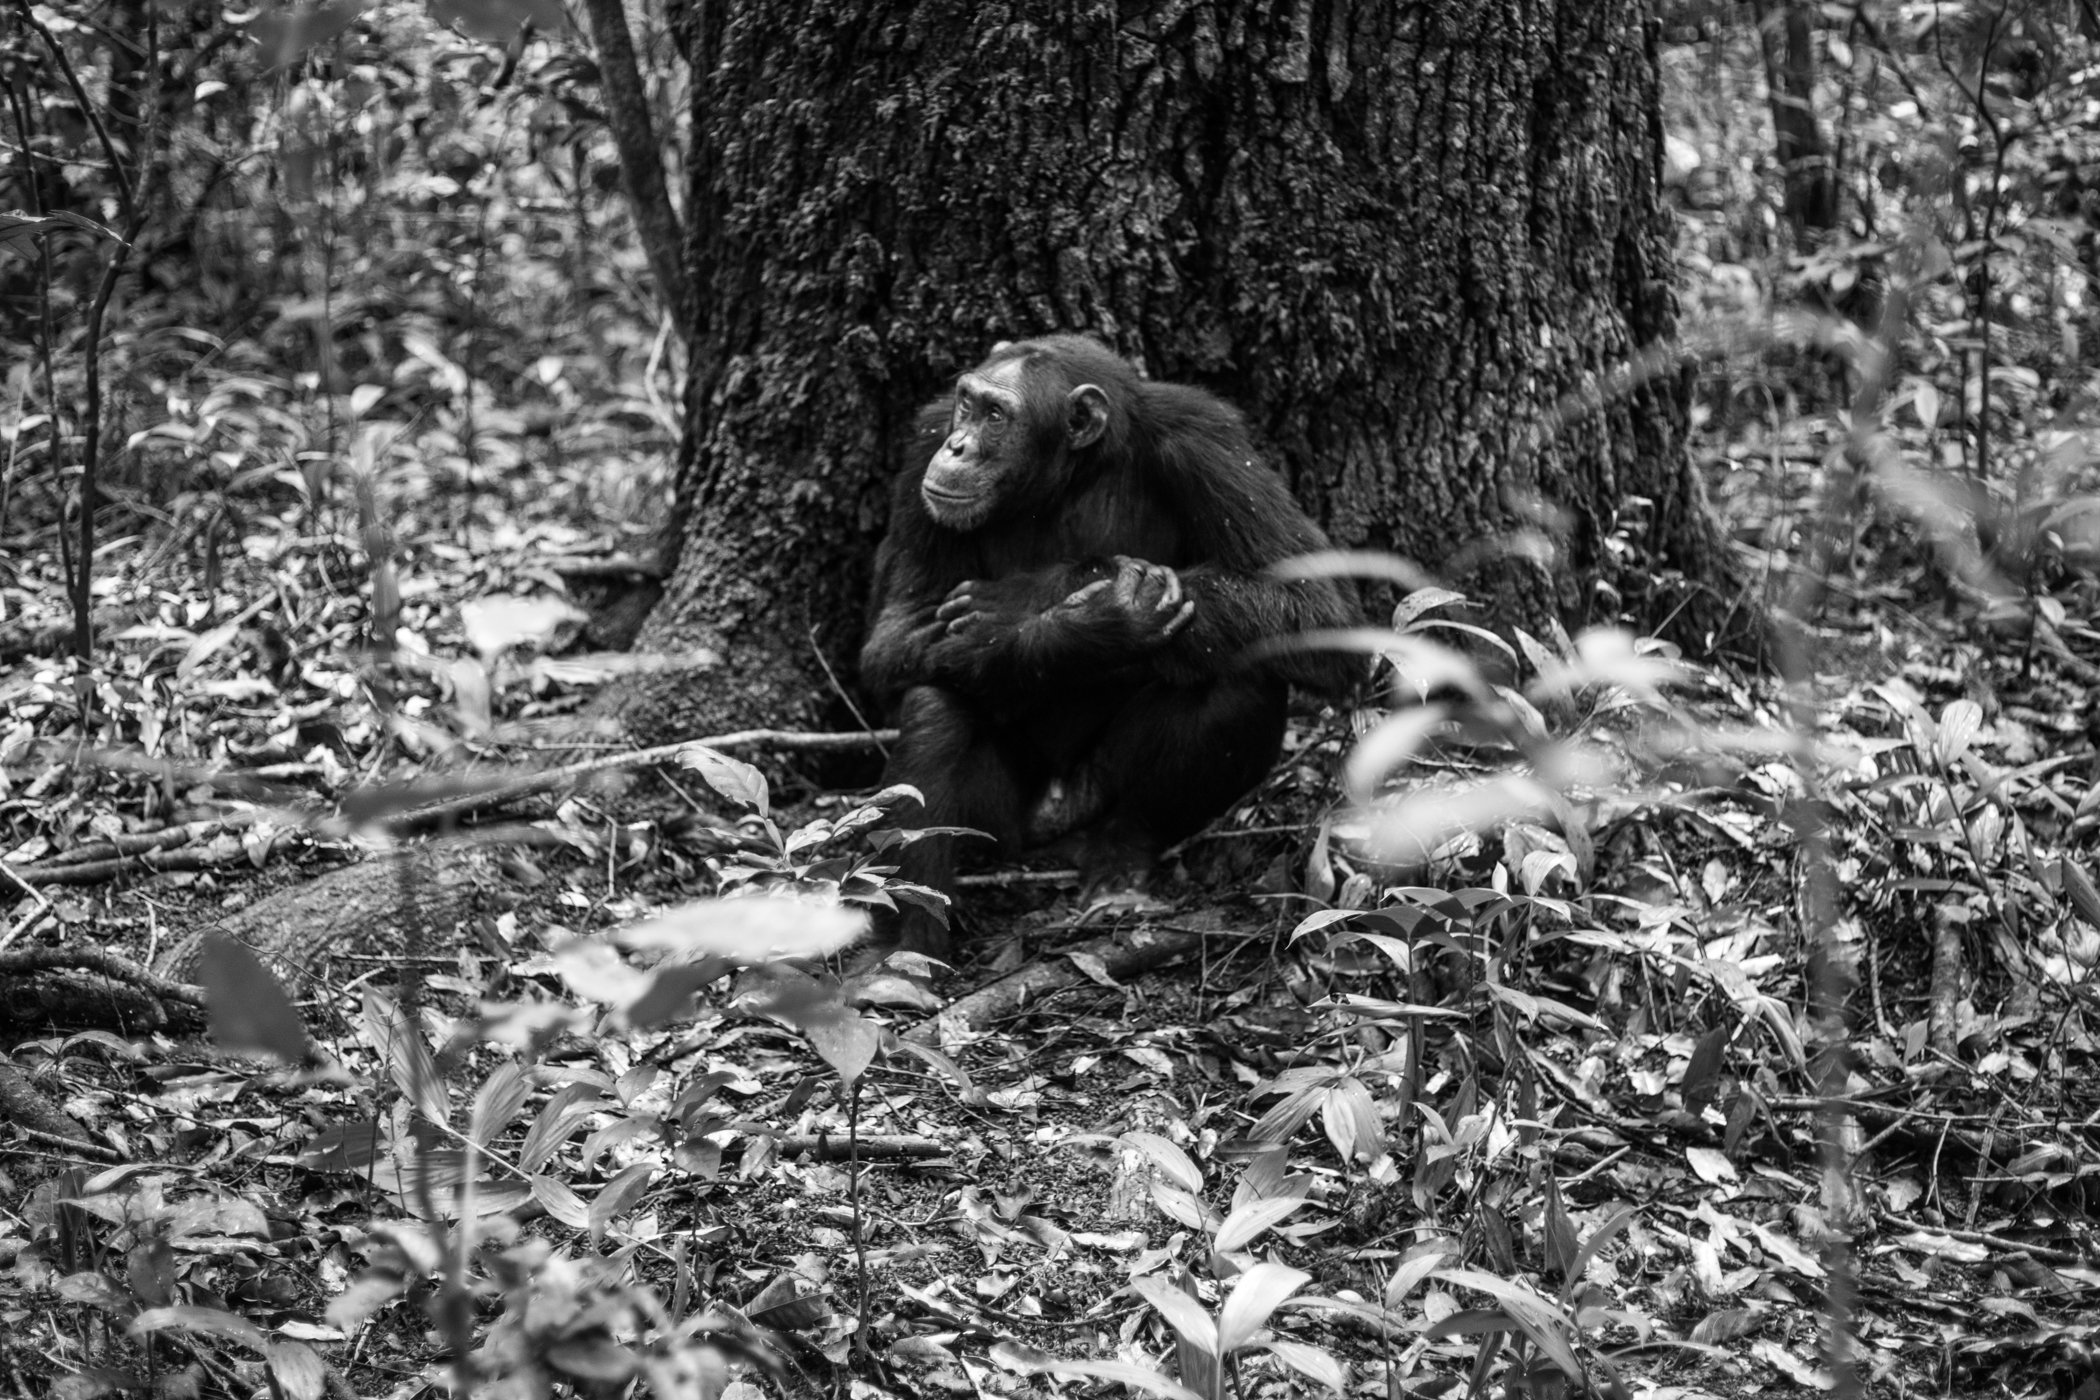 Chimp_Forest_Uganda-IMG_1322-untitled.jpg